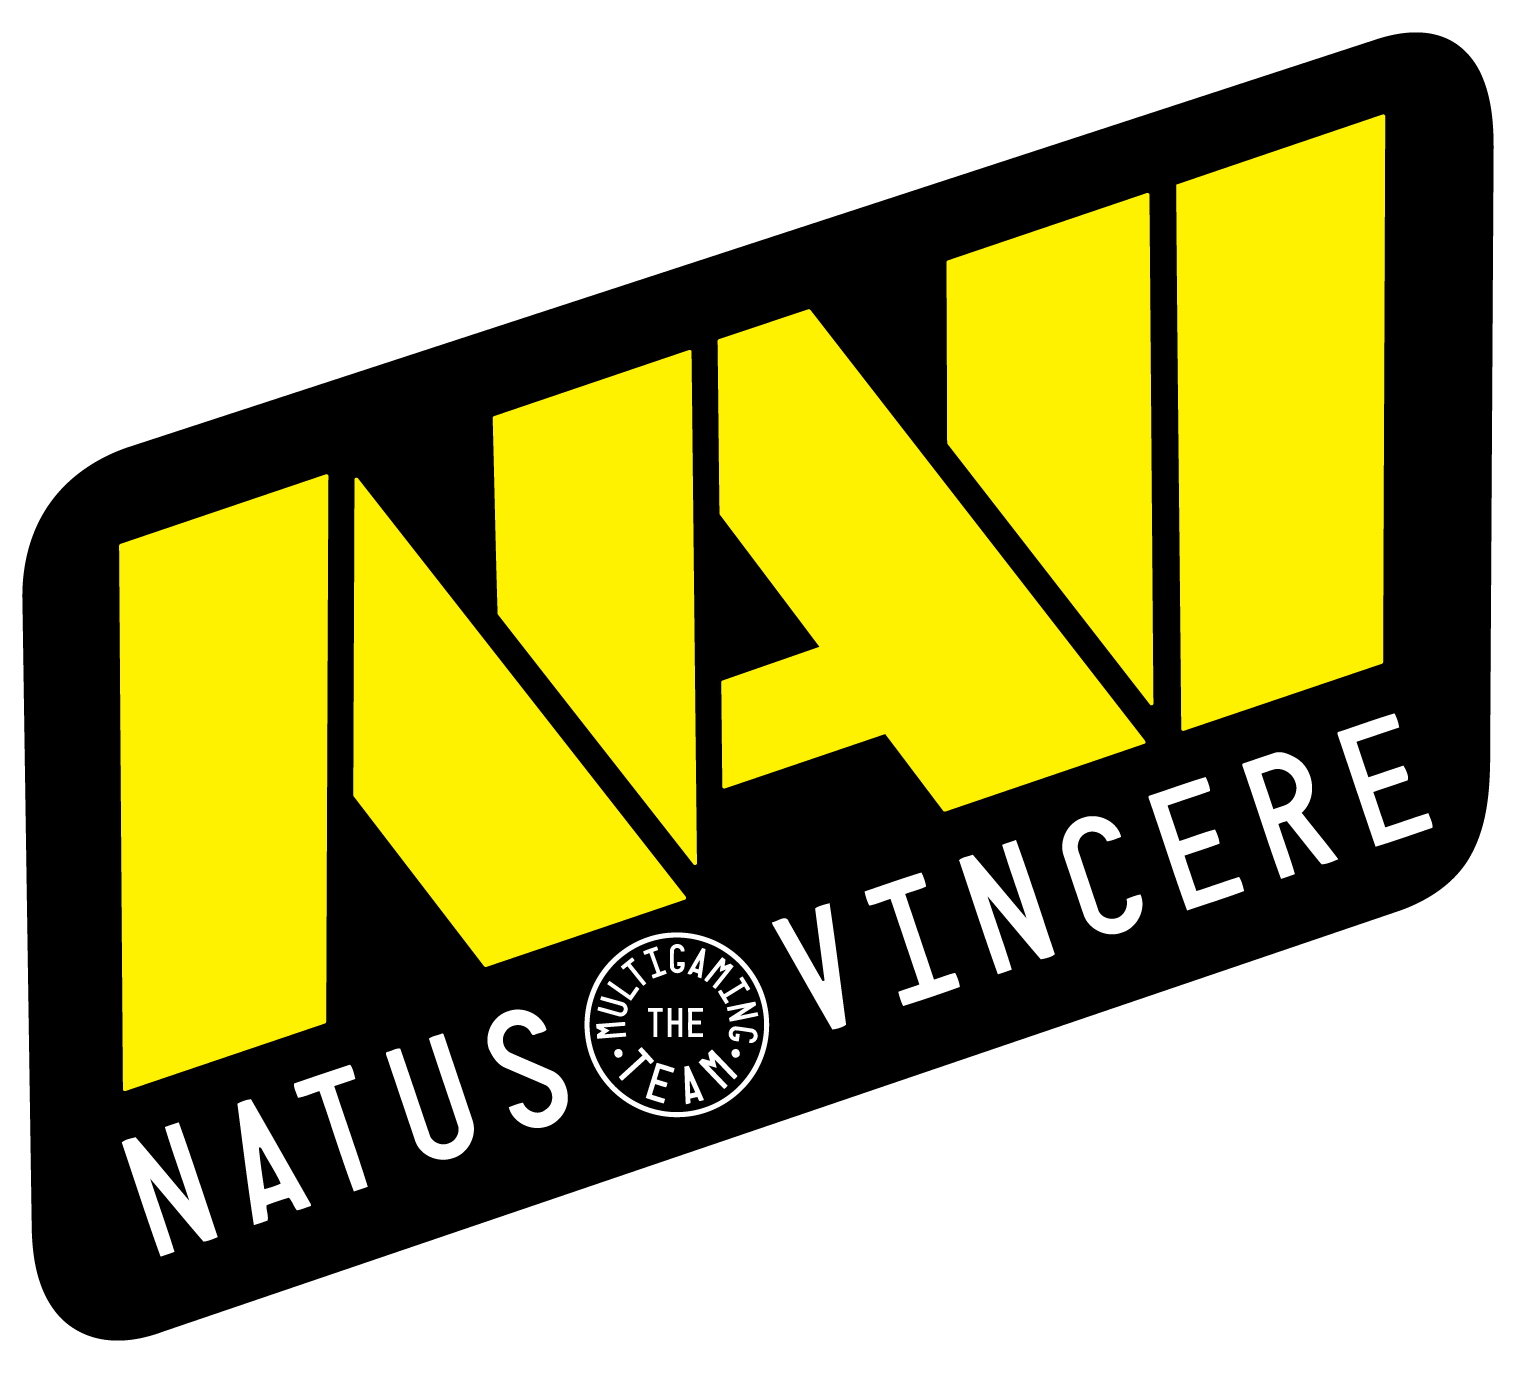 Natus Vincere CS:GO Team